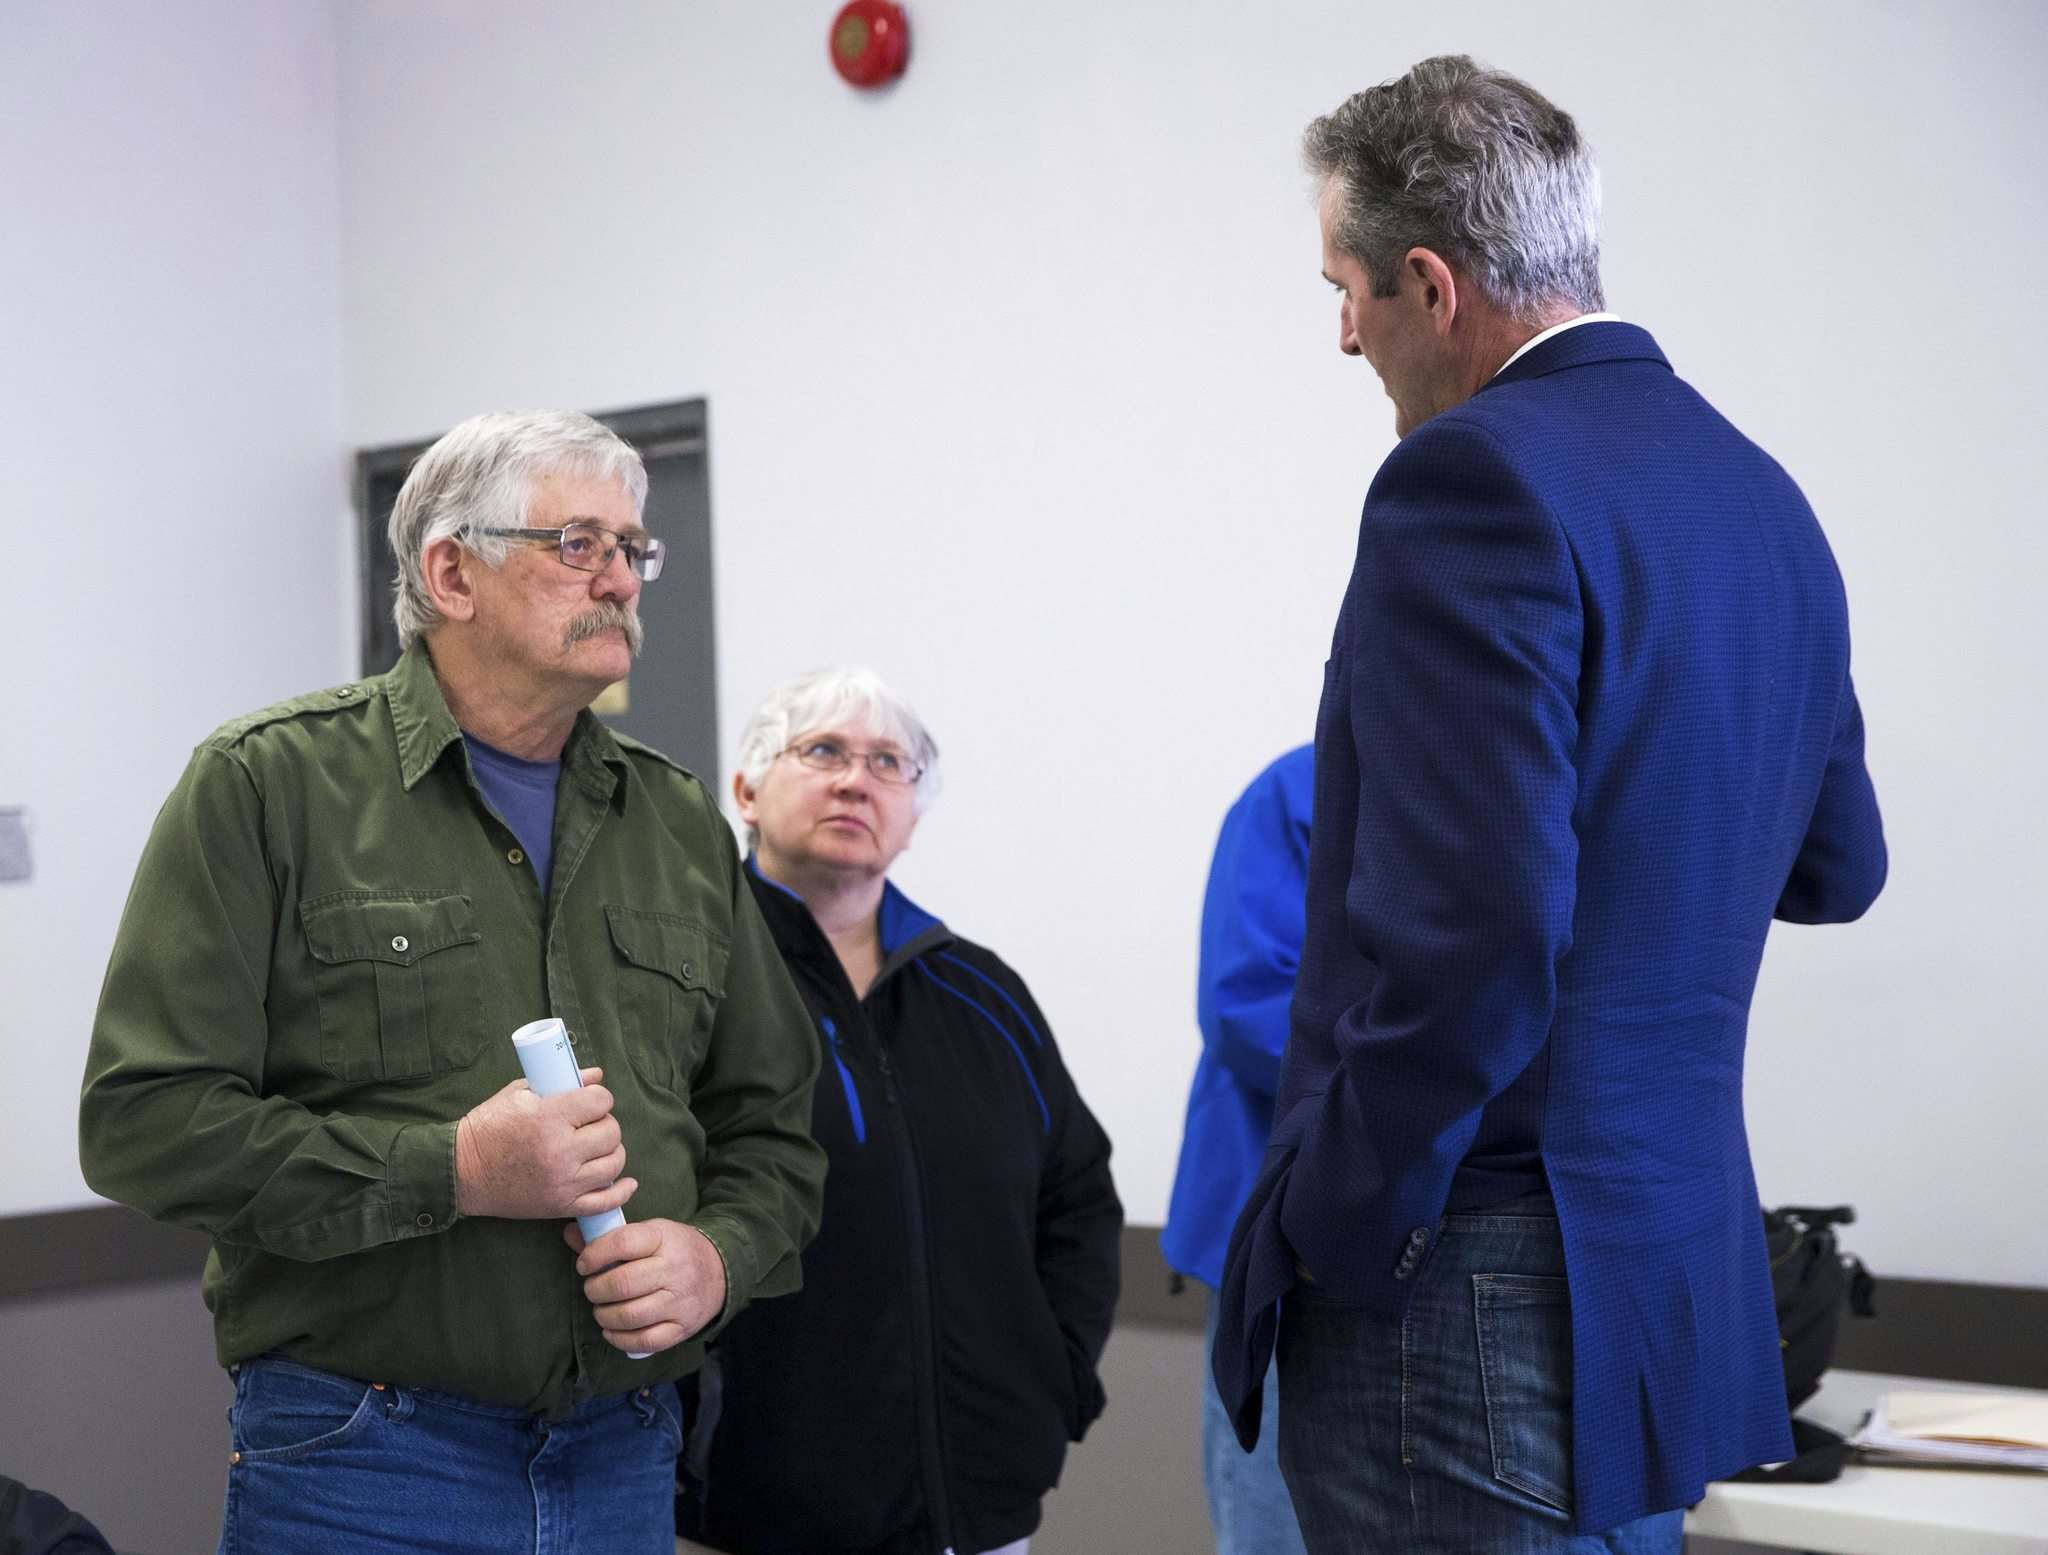 MIKAELA MACKENZIE / WINNIPEG FREE PRESS</p><p>Premier Brian Pallister chats with farmers Ross and Helen Jermey at the meeting.</p>